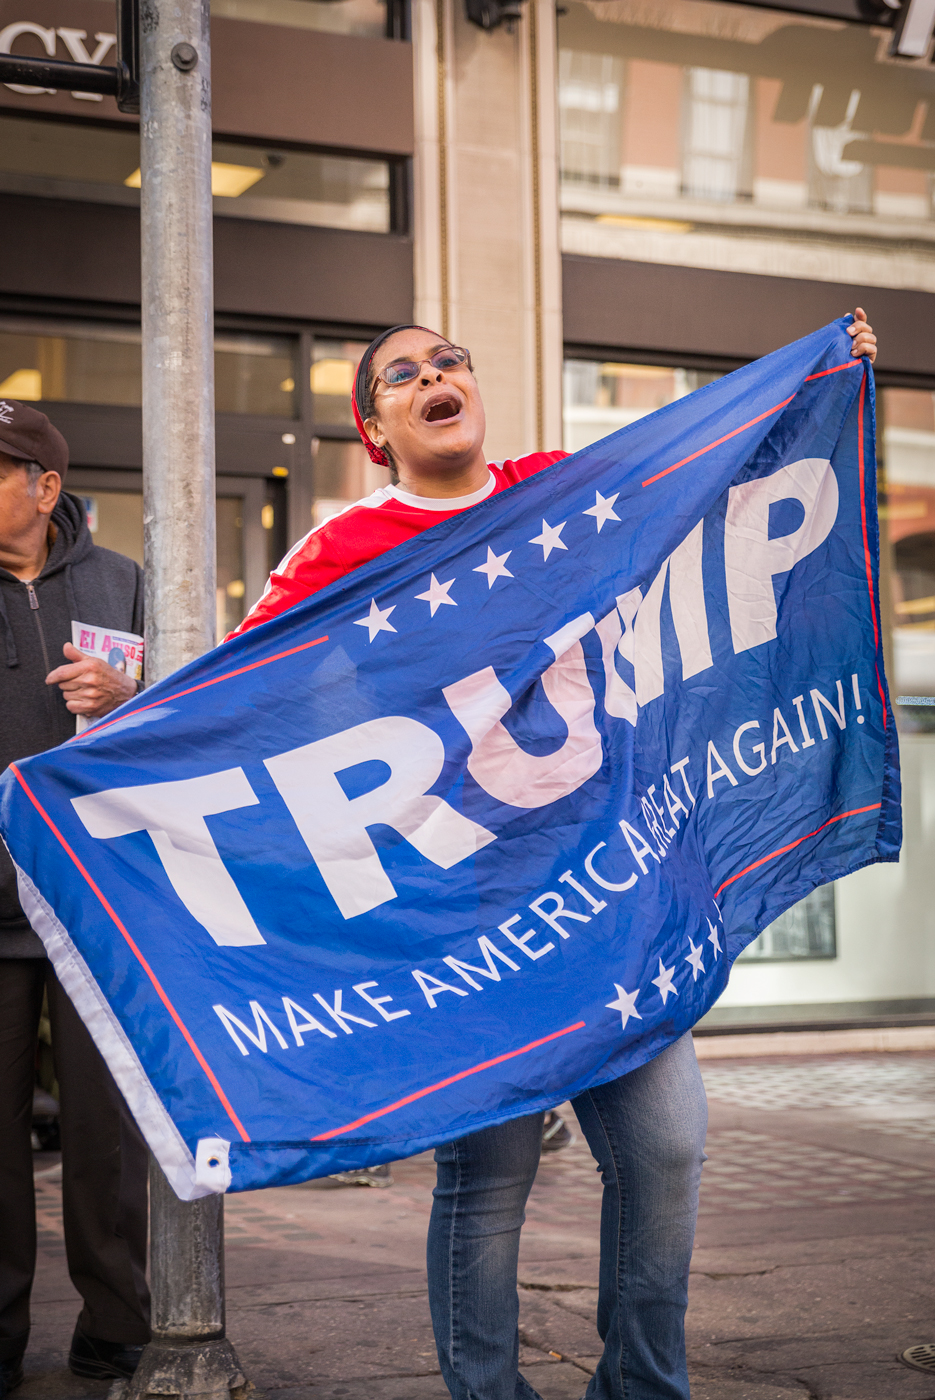 """(2018) Few Trump supporters show up to protest or try to change minds, but those who do are fully committed to their cause. Conservative conspiracy-theory channel """"InfoWars"""" was in the crowd interviewing marchers."""